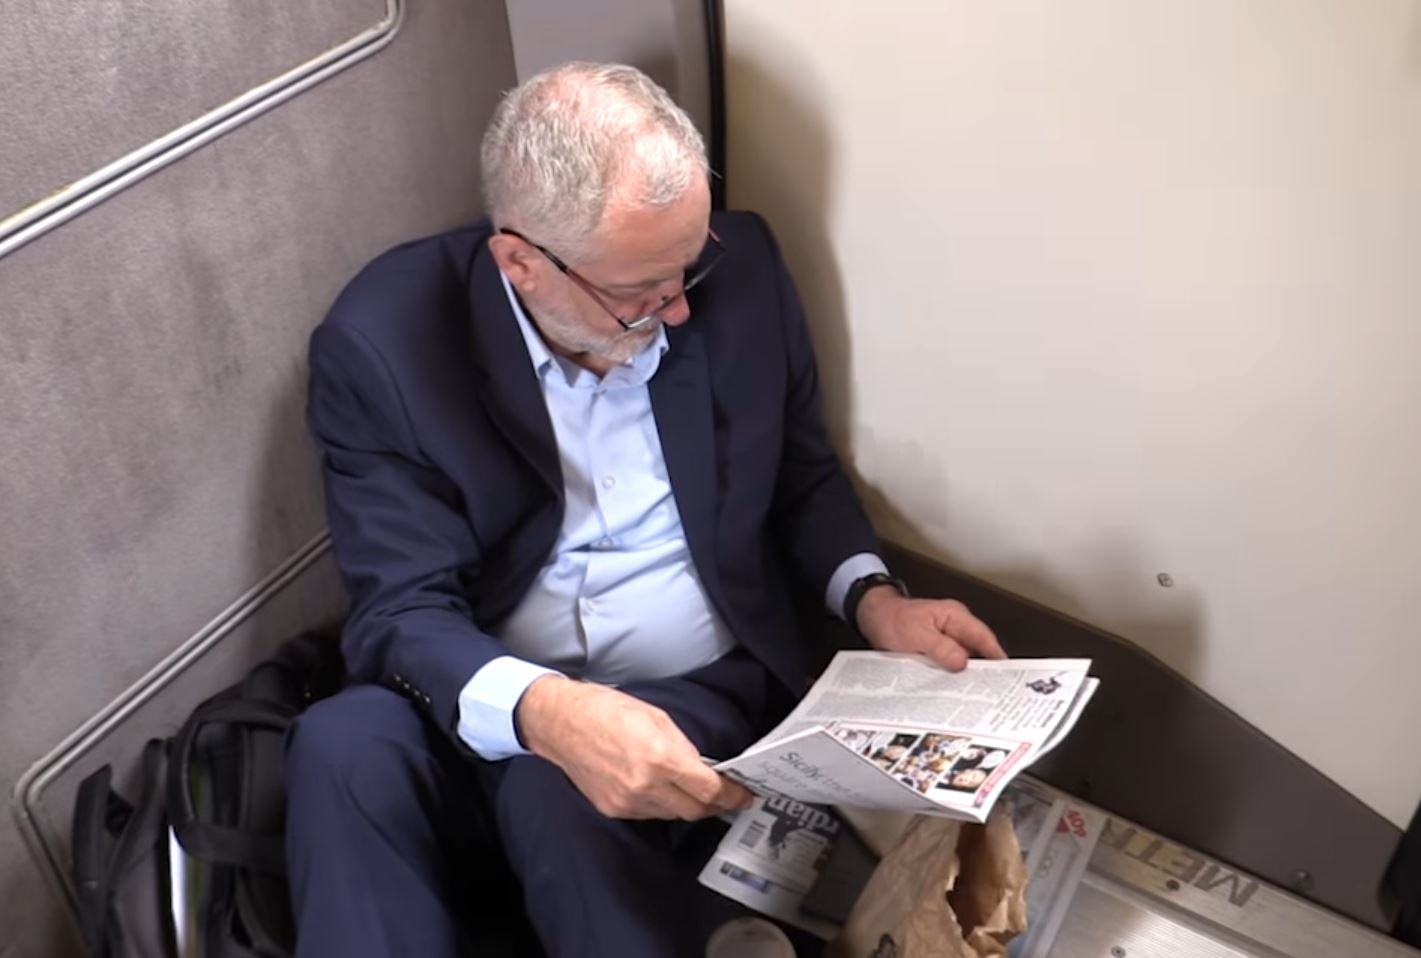 Supporters say video shows Jeremy Corbyn was right about #traingate after all